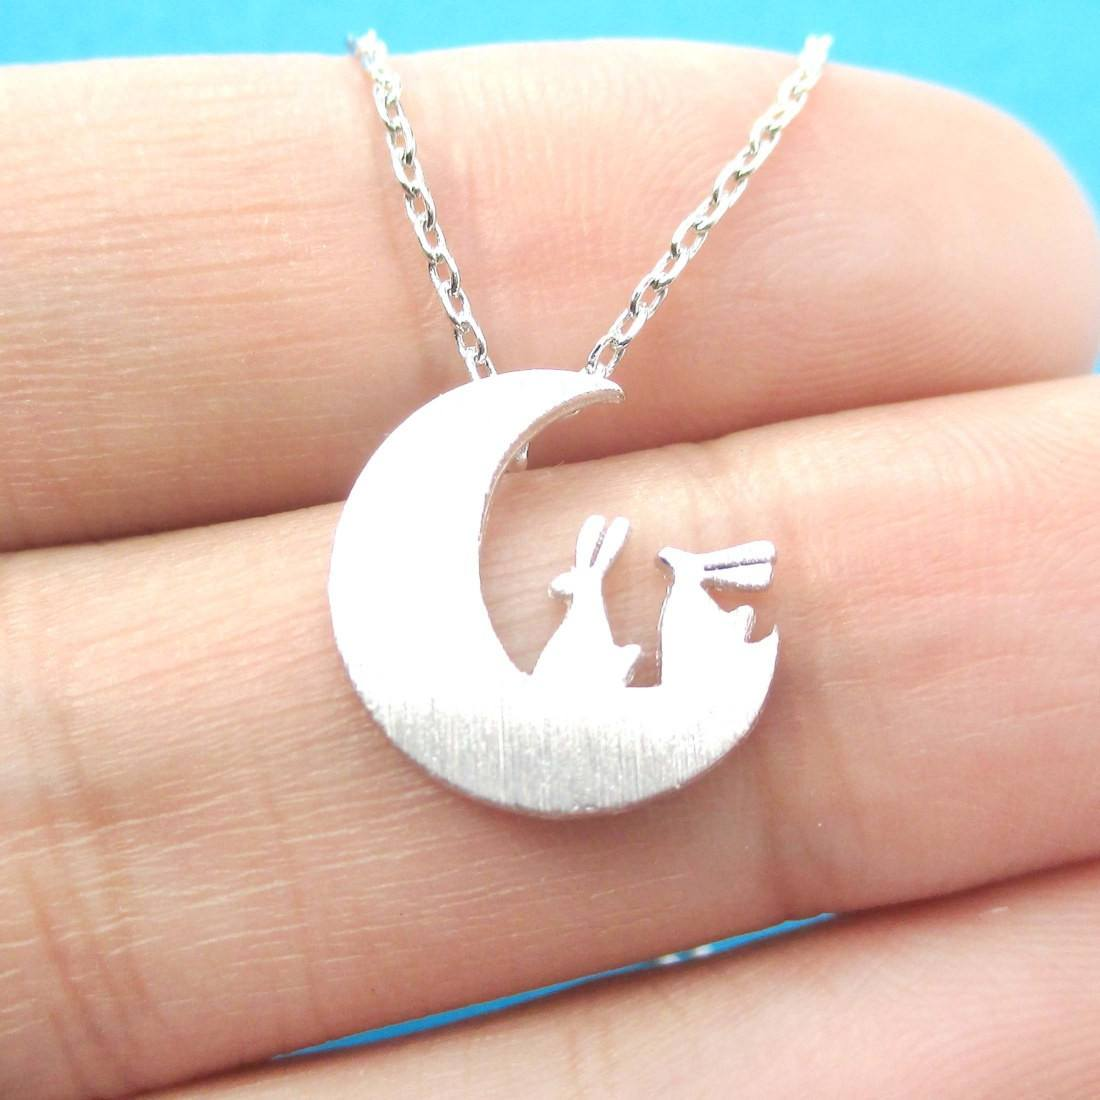 Bunny Rabbit on the Moon Silhouette Shaped Pendant Necklace in Silver